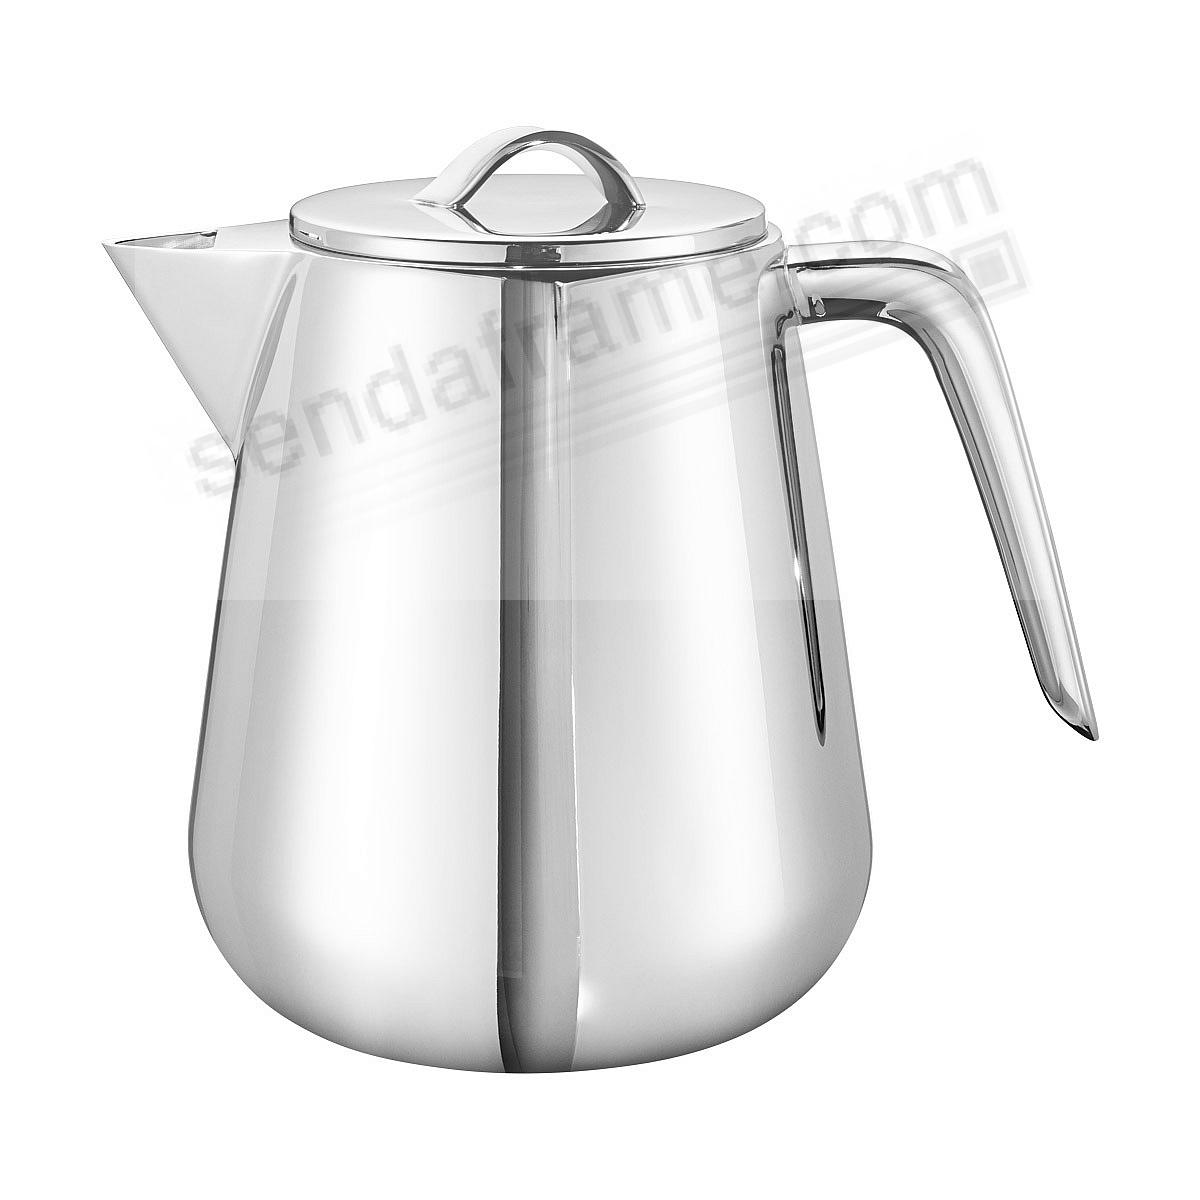 HELIX THERMO TEA POT crafted by Georg Jensen®